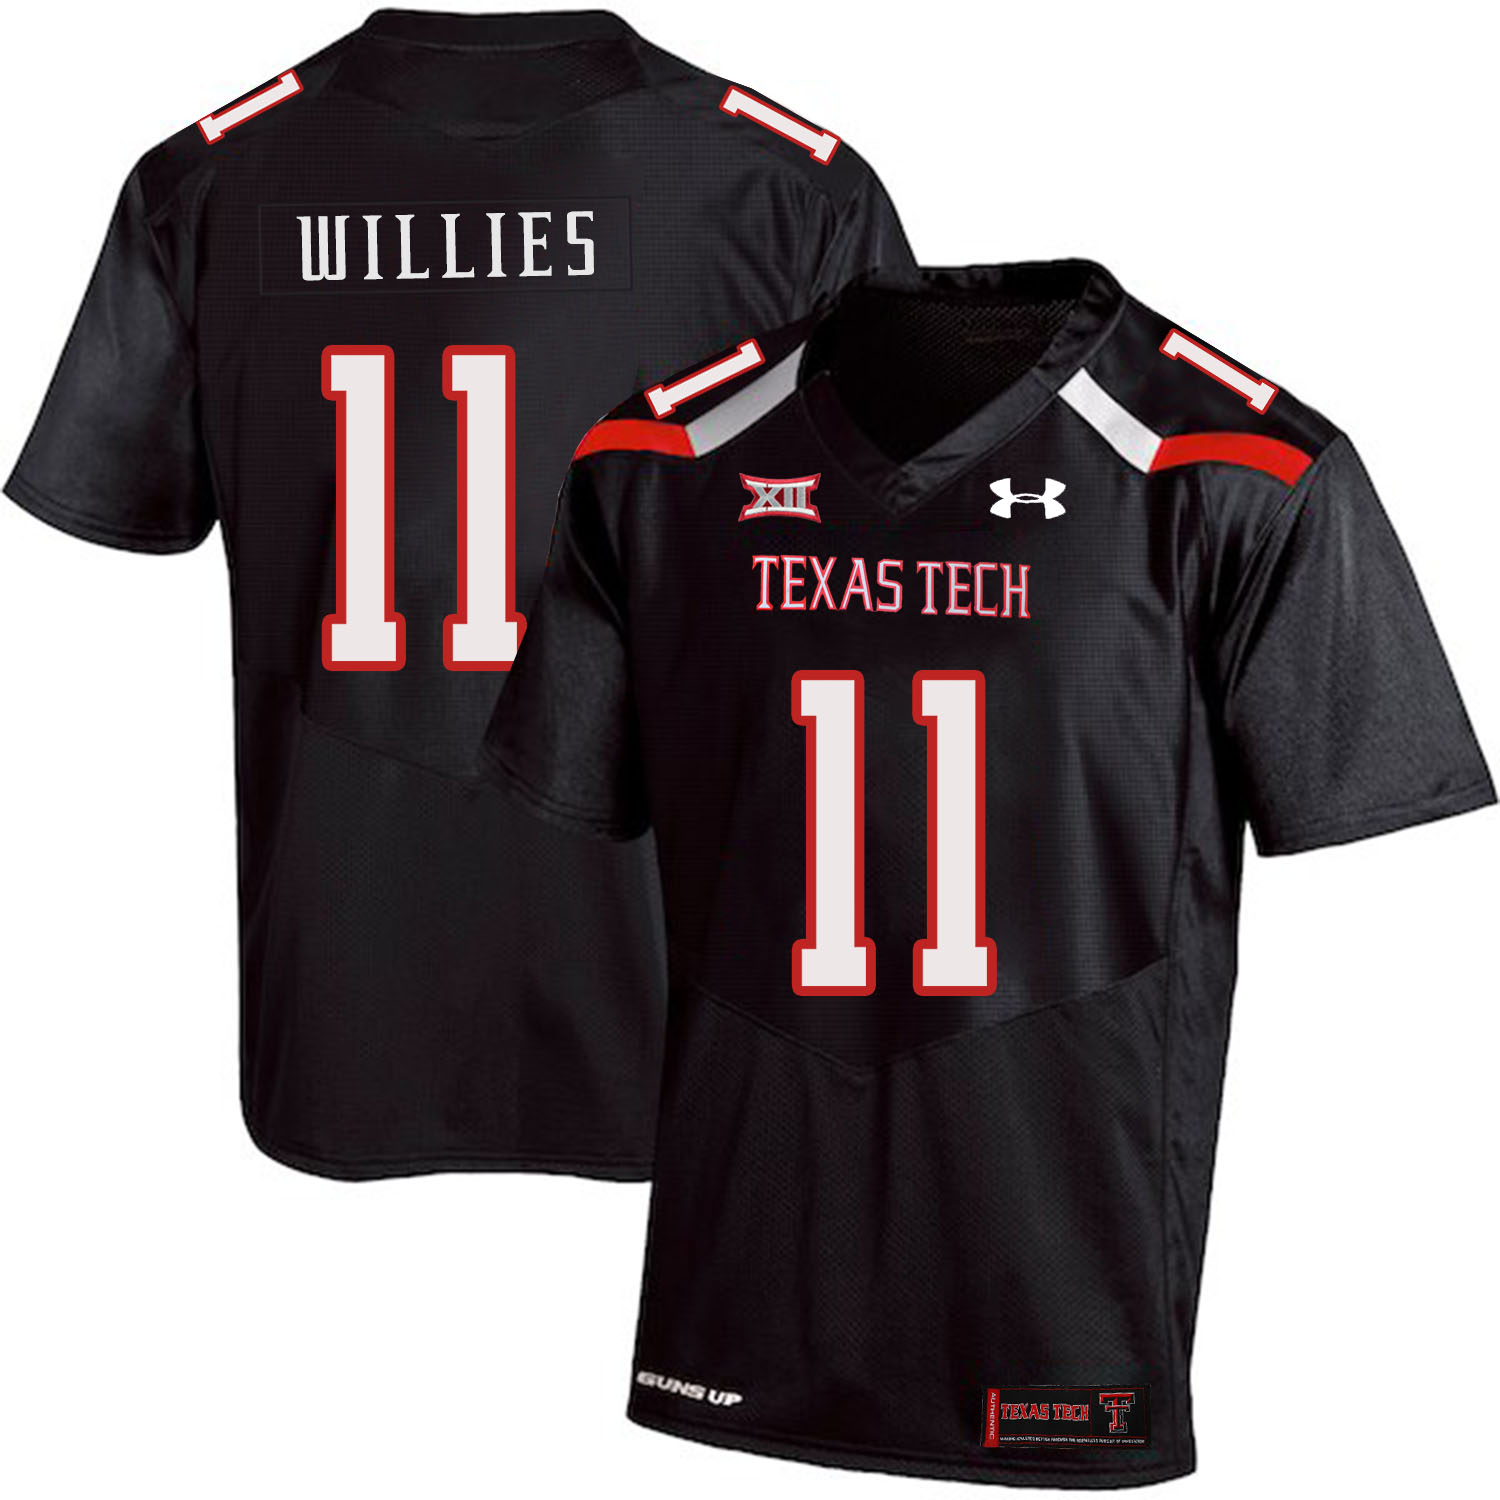 Texas Tech Red Raiders 11 Derrick Willies Black College Football Jersey